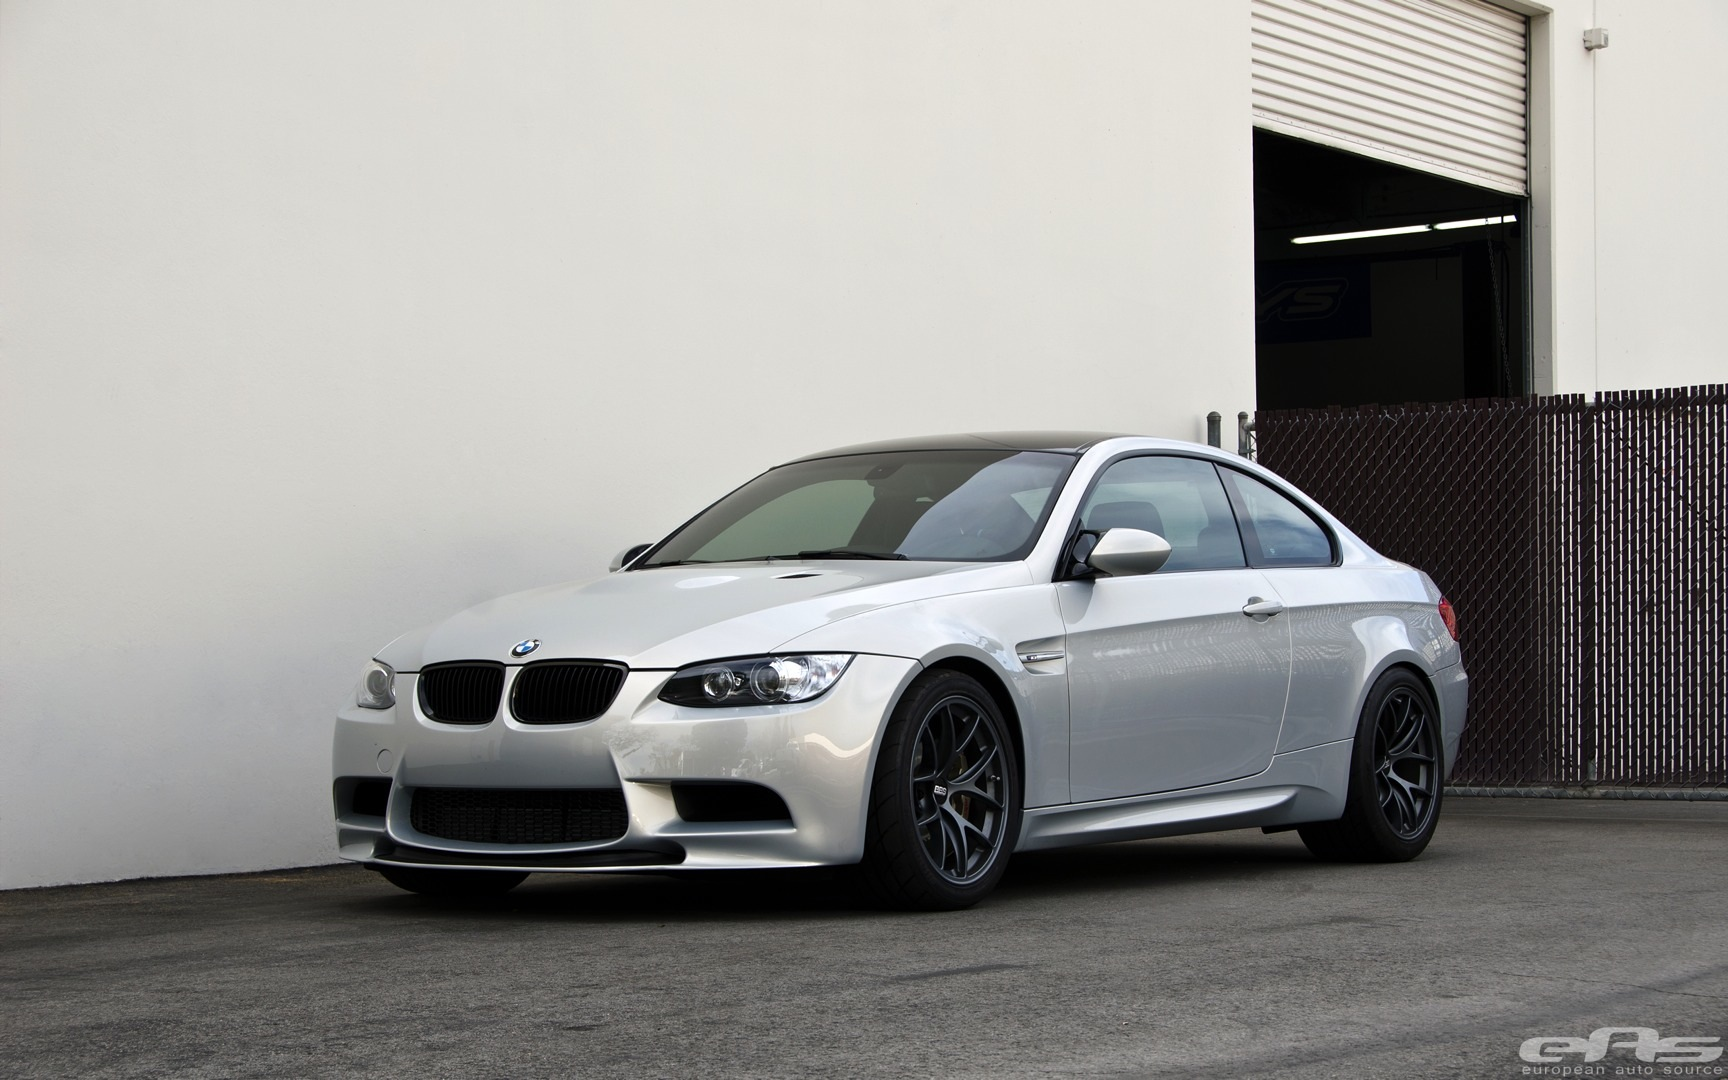 bmw e92 m3 gets a complete make over at eas autoevolution. Black Bedroom Furniture Sets. Home Design Ideas